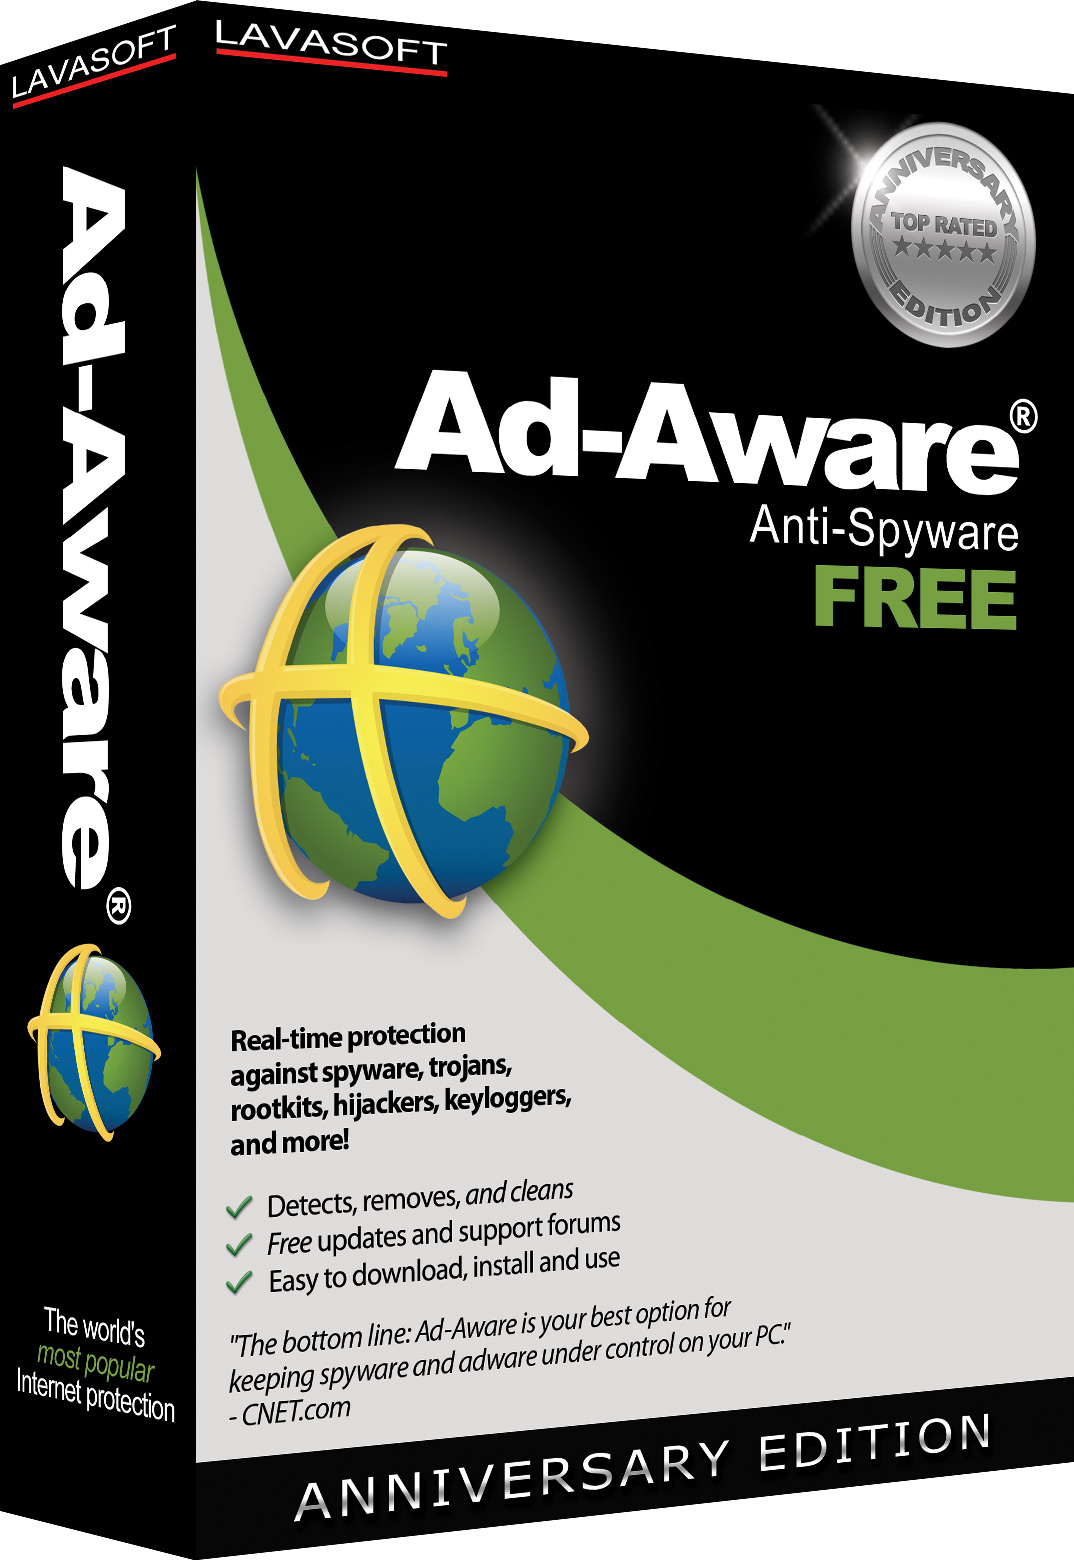 Ad-aware 2008 available for download • technology bites.